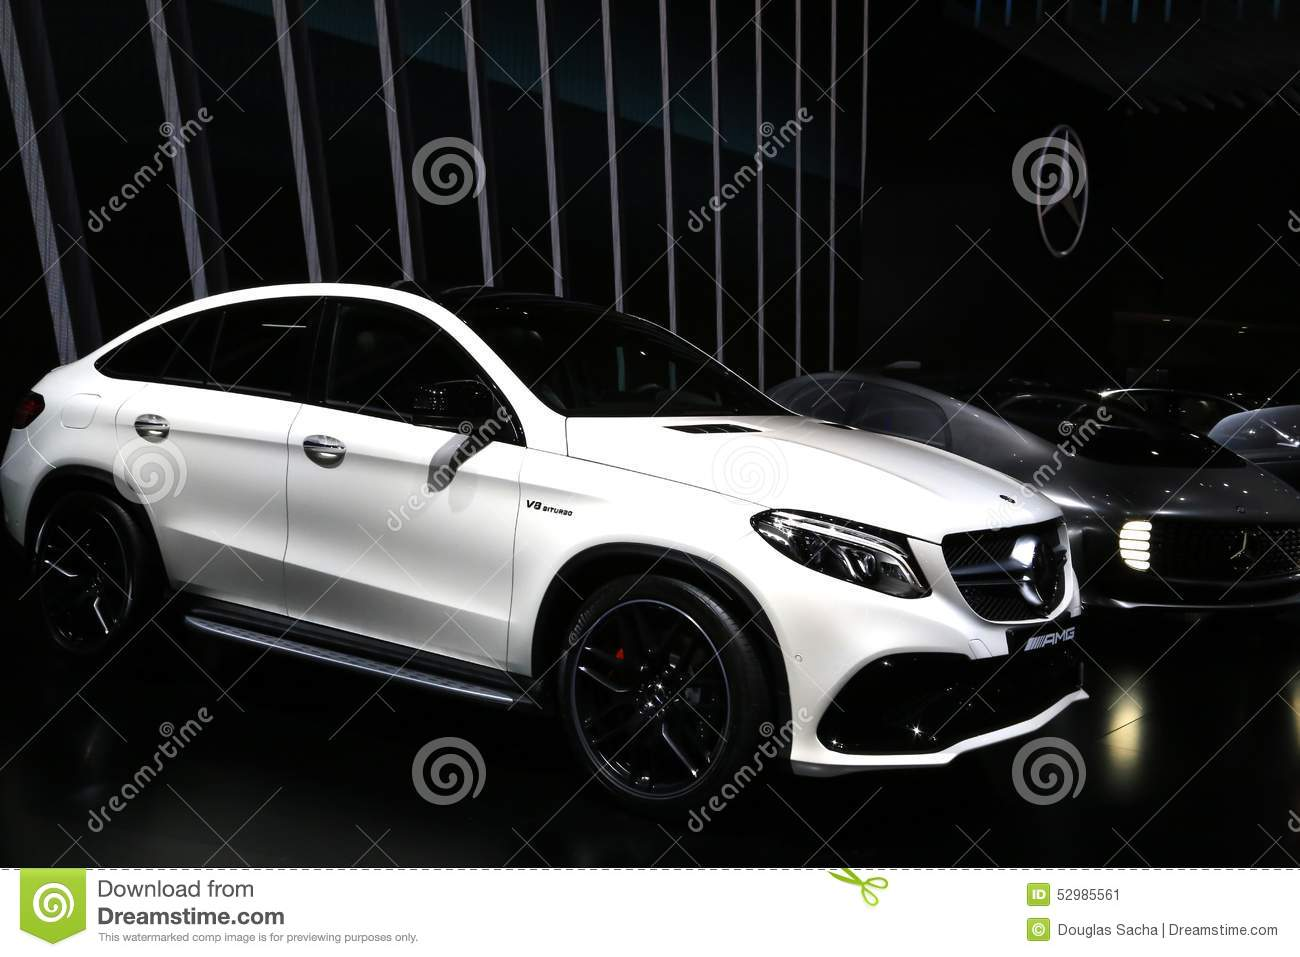 Mercedes-Benz GLE 63 AMG SUV Displayed At The Auto Show